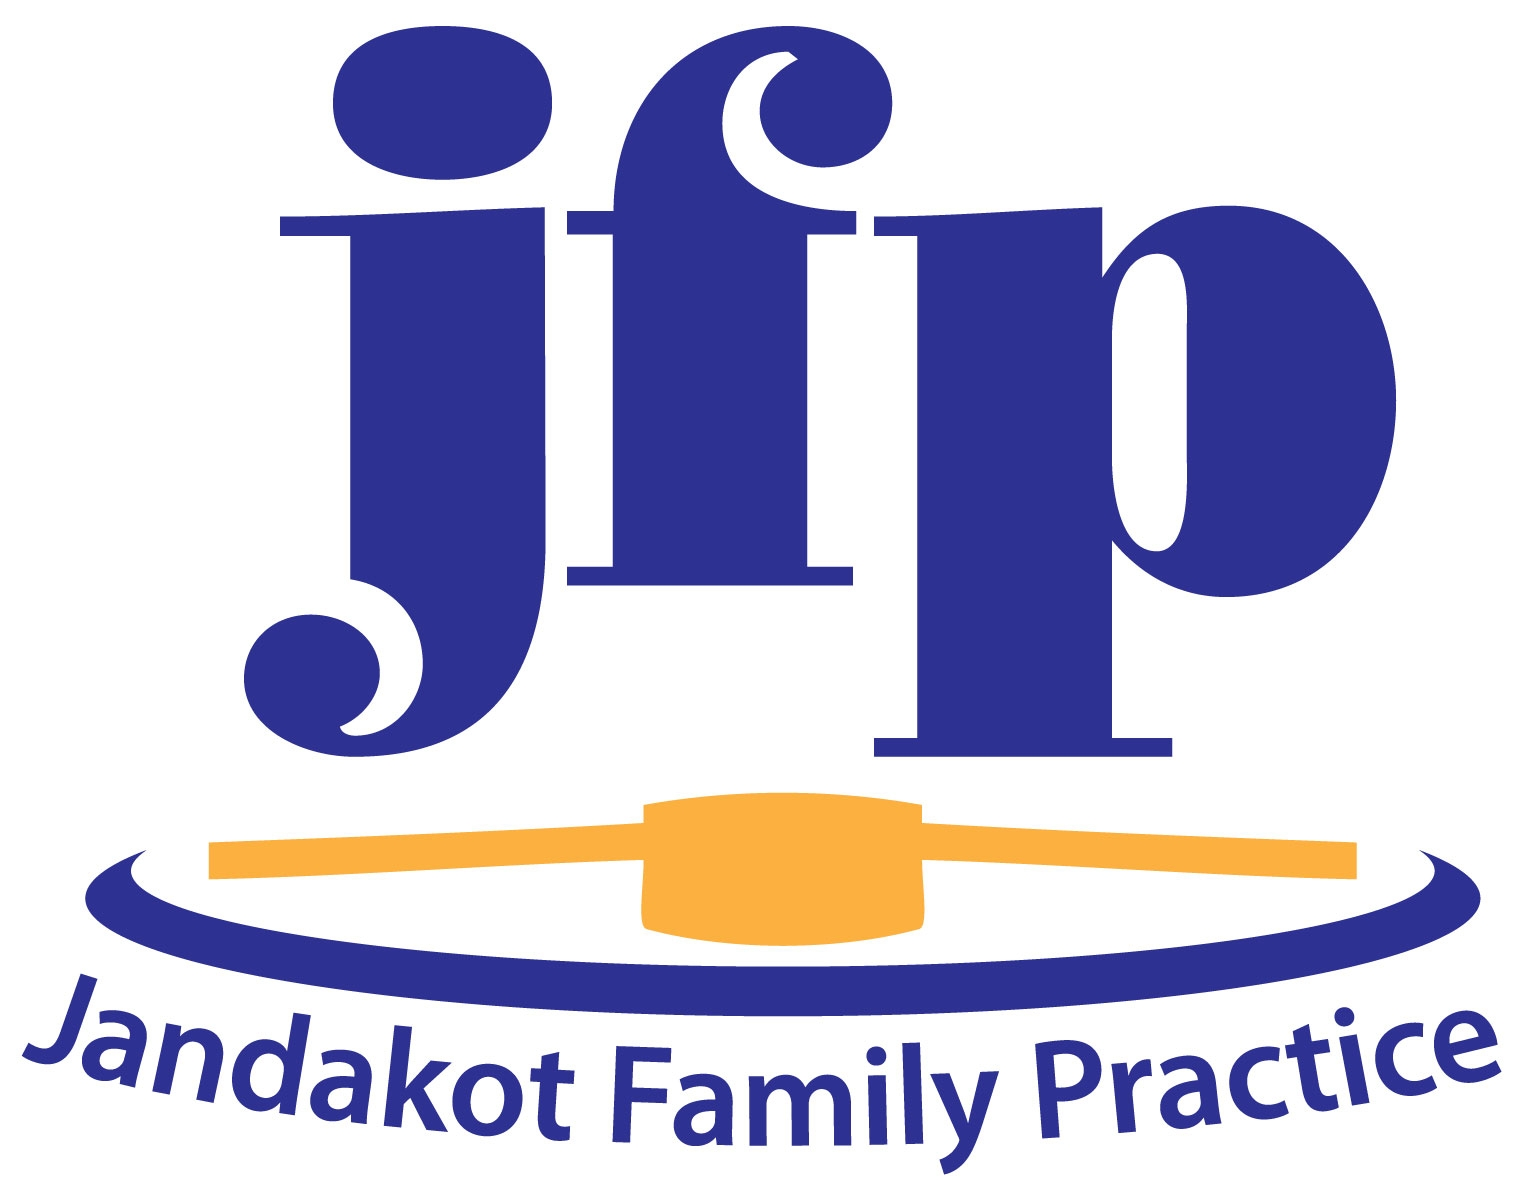 Logo of Jandakot Family Practice